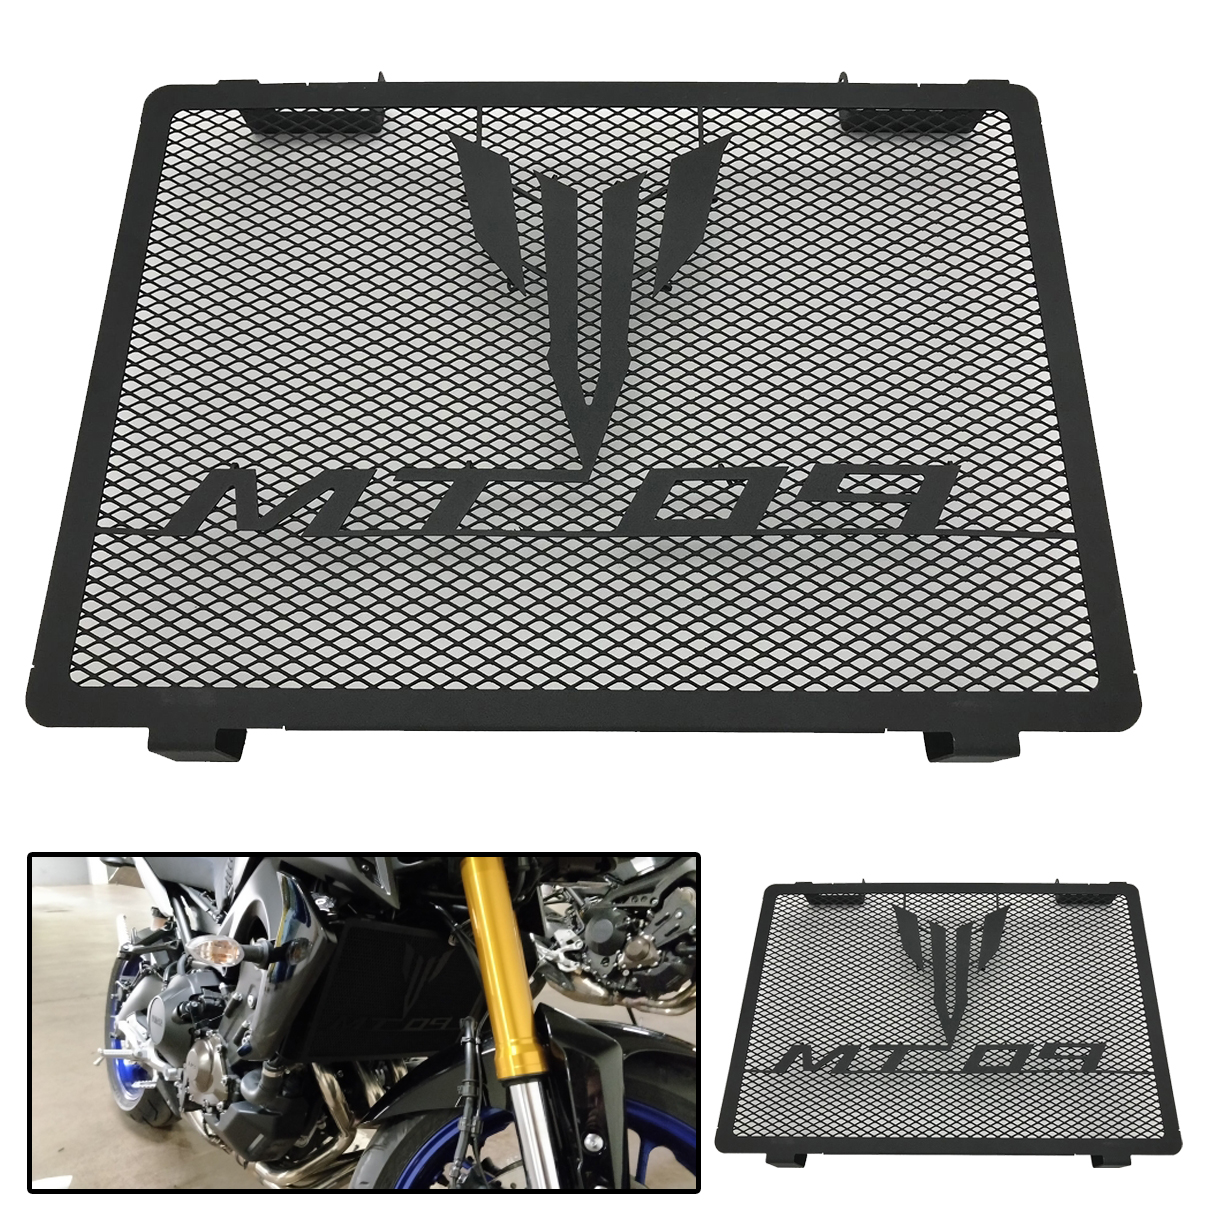 Motorcycle MT-09 XSR900 Radiator Guard Grille Grill Cover Protector For YAMAHA MT 09 FZ09 FZ 09 MT-09 TRACER 2014-2020 2018 2019 title=